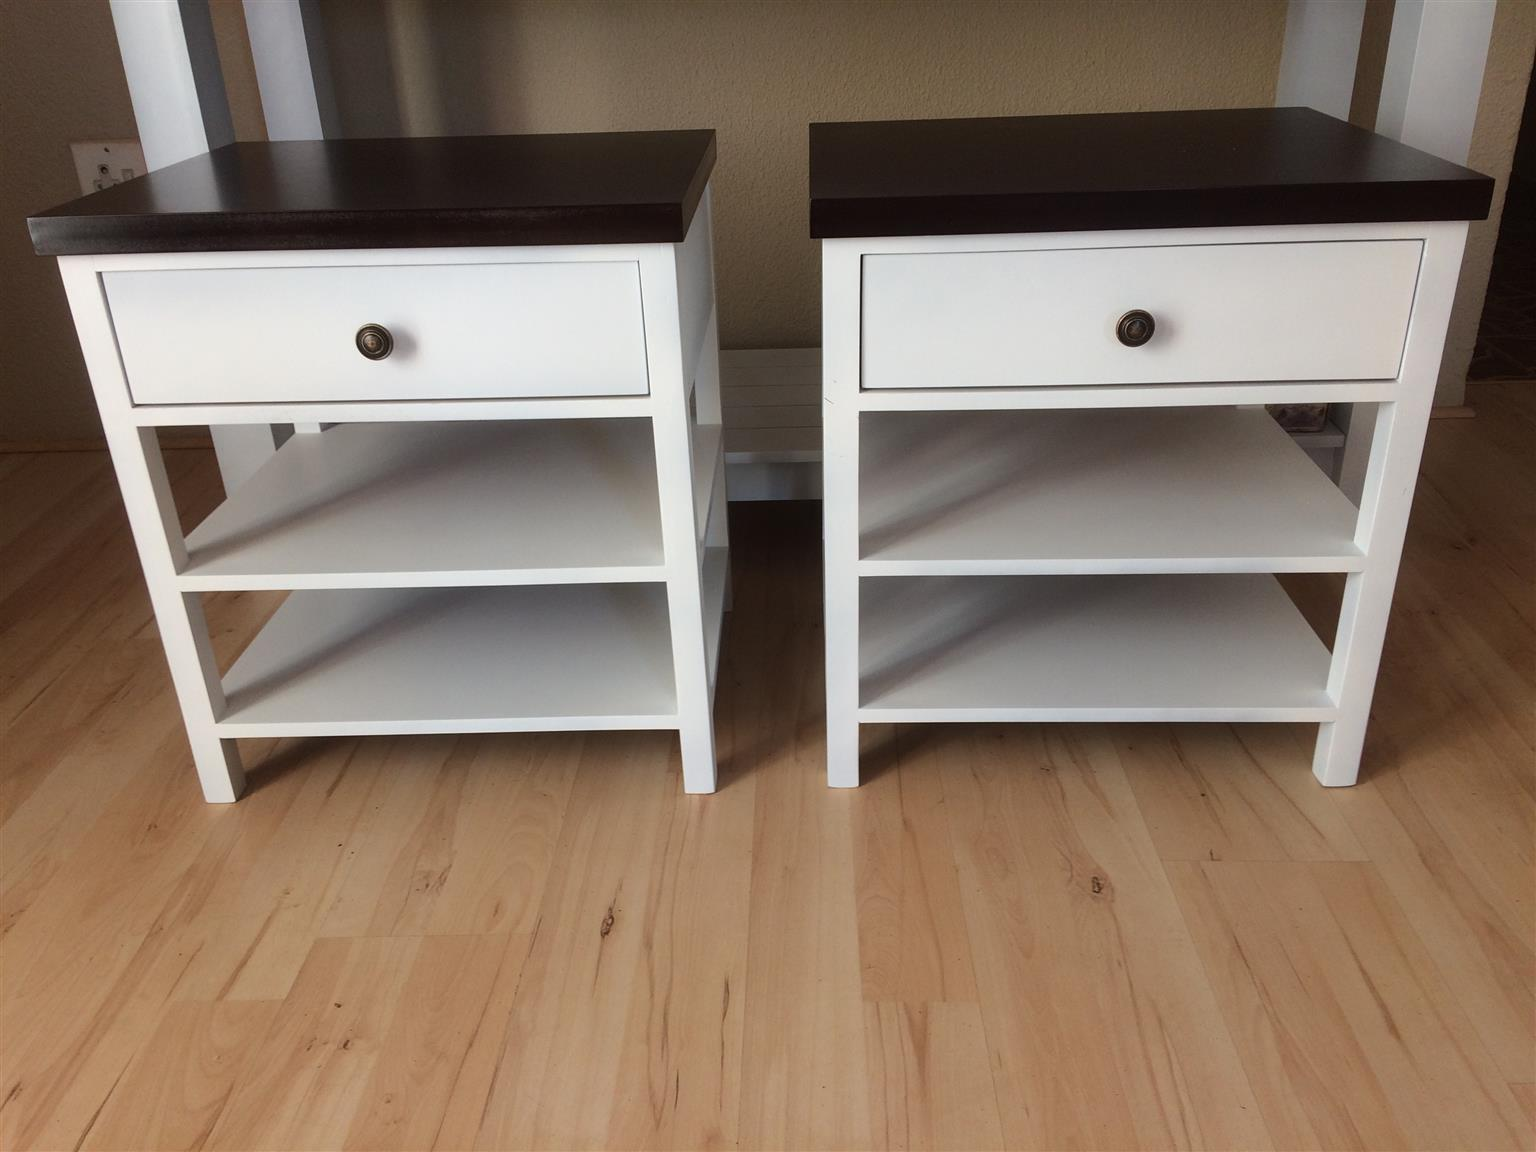 Bedside Pedestals For Sale ... On Order